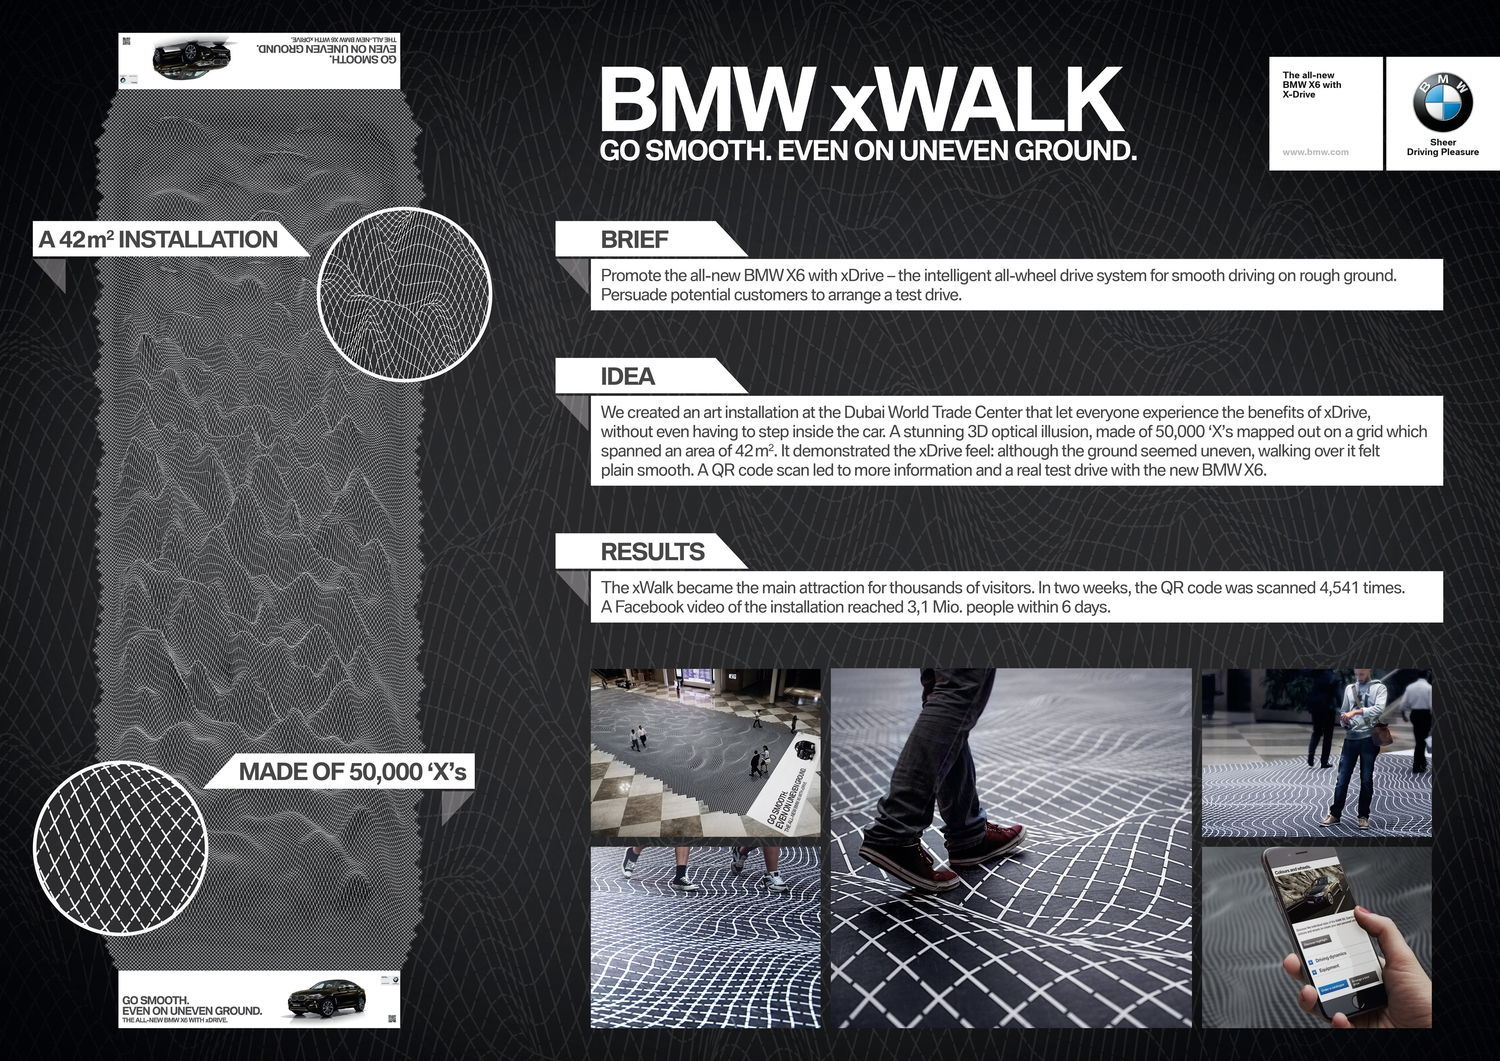 bmw-xwalk-media-outdoor-376447-adeevee.jpg